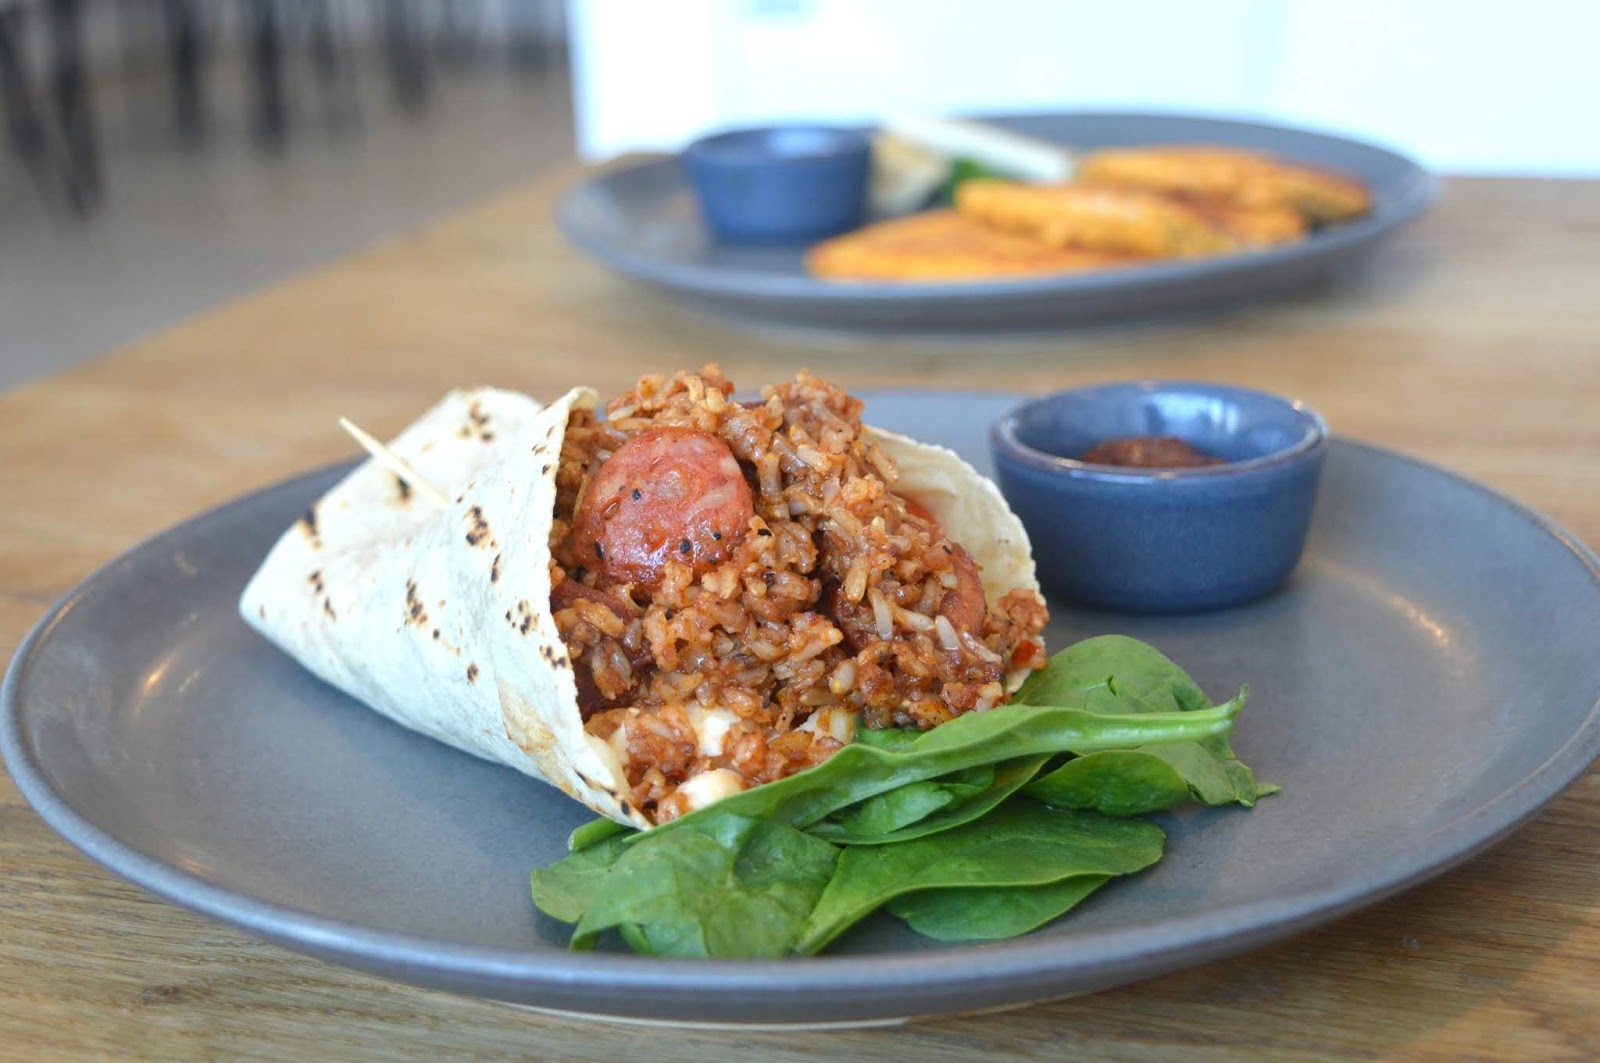 Breakfast Burrito - Dirt Health, Chillingham Rd, Newcastle